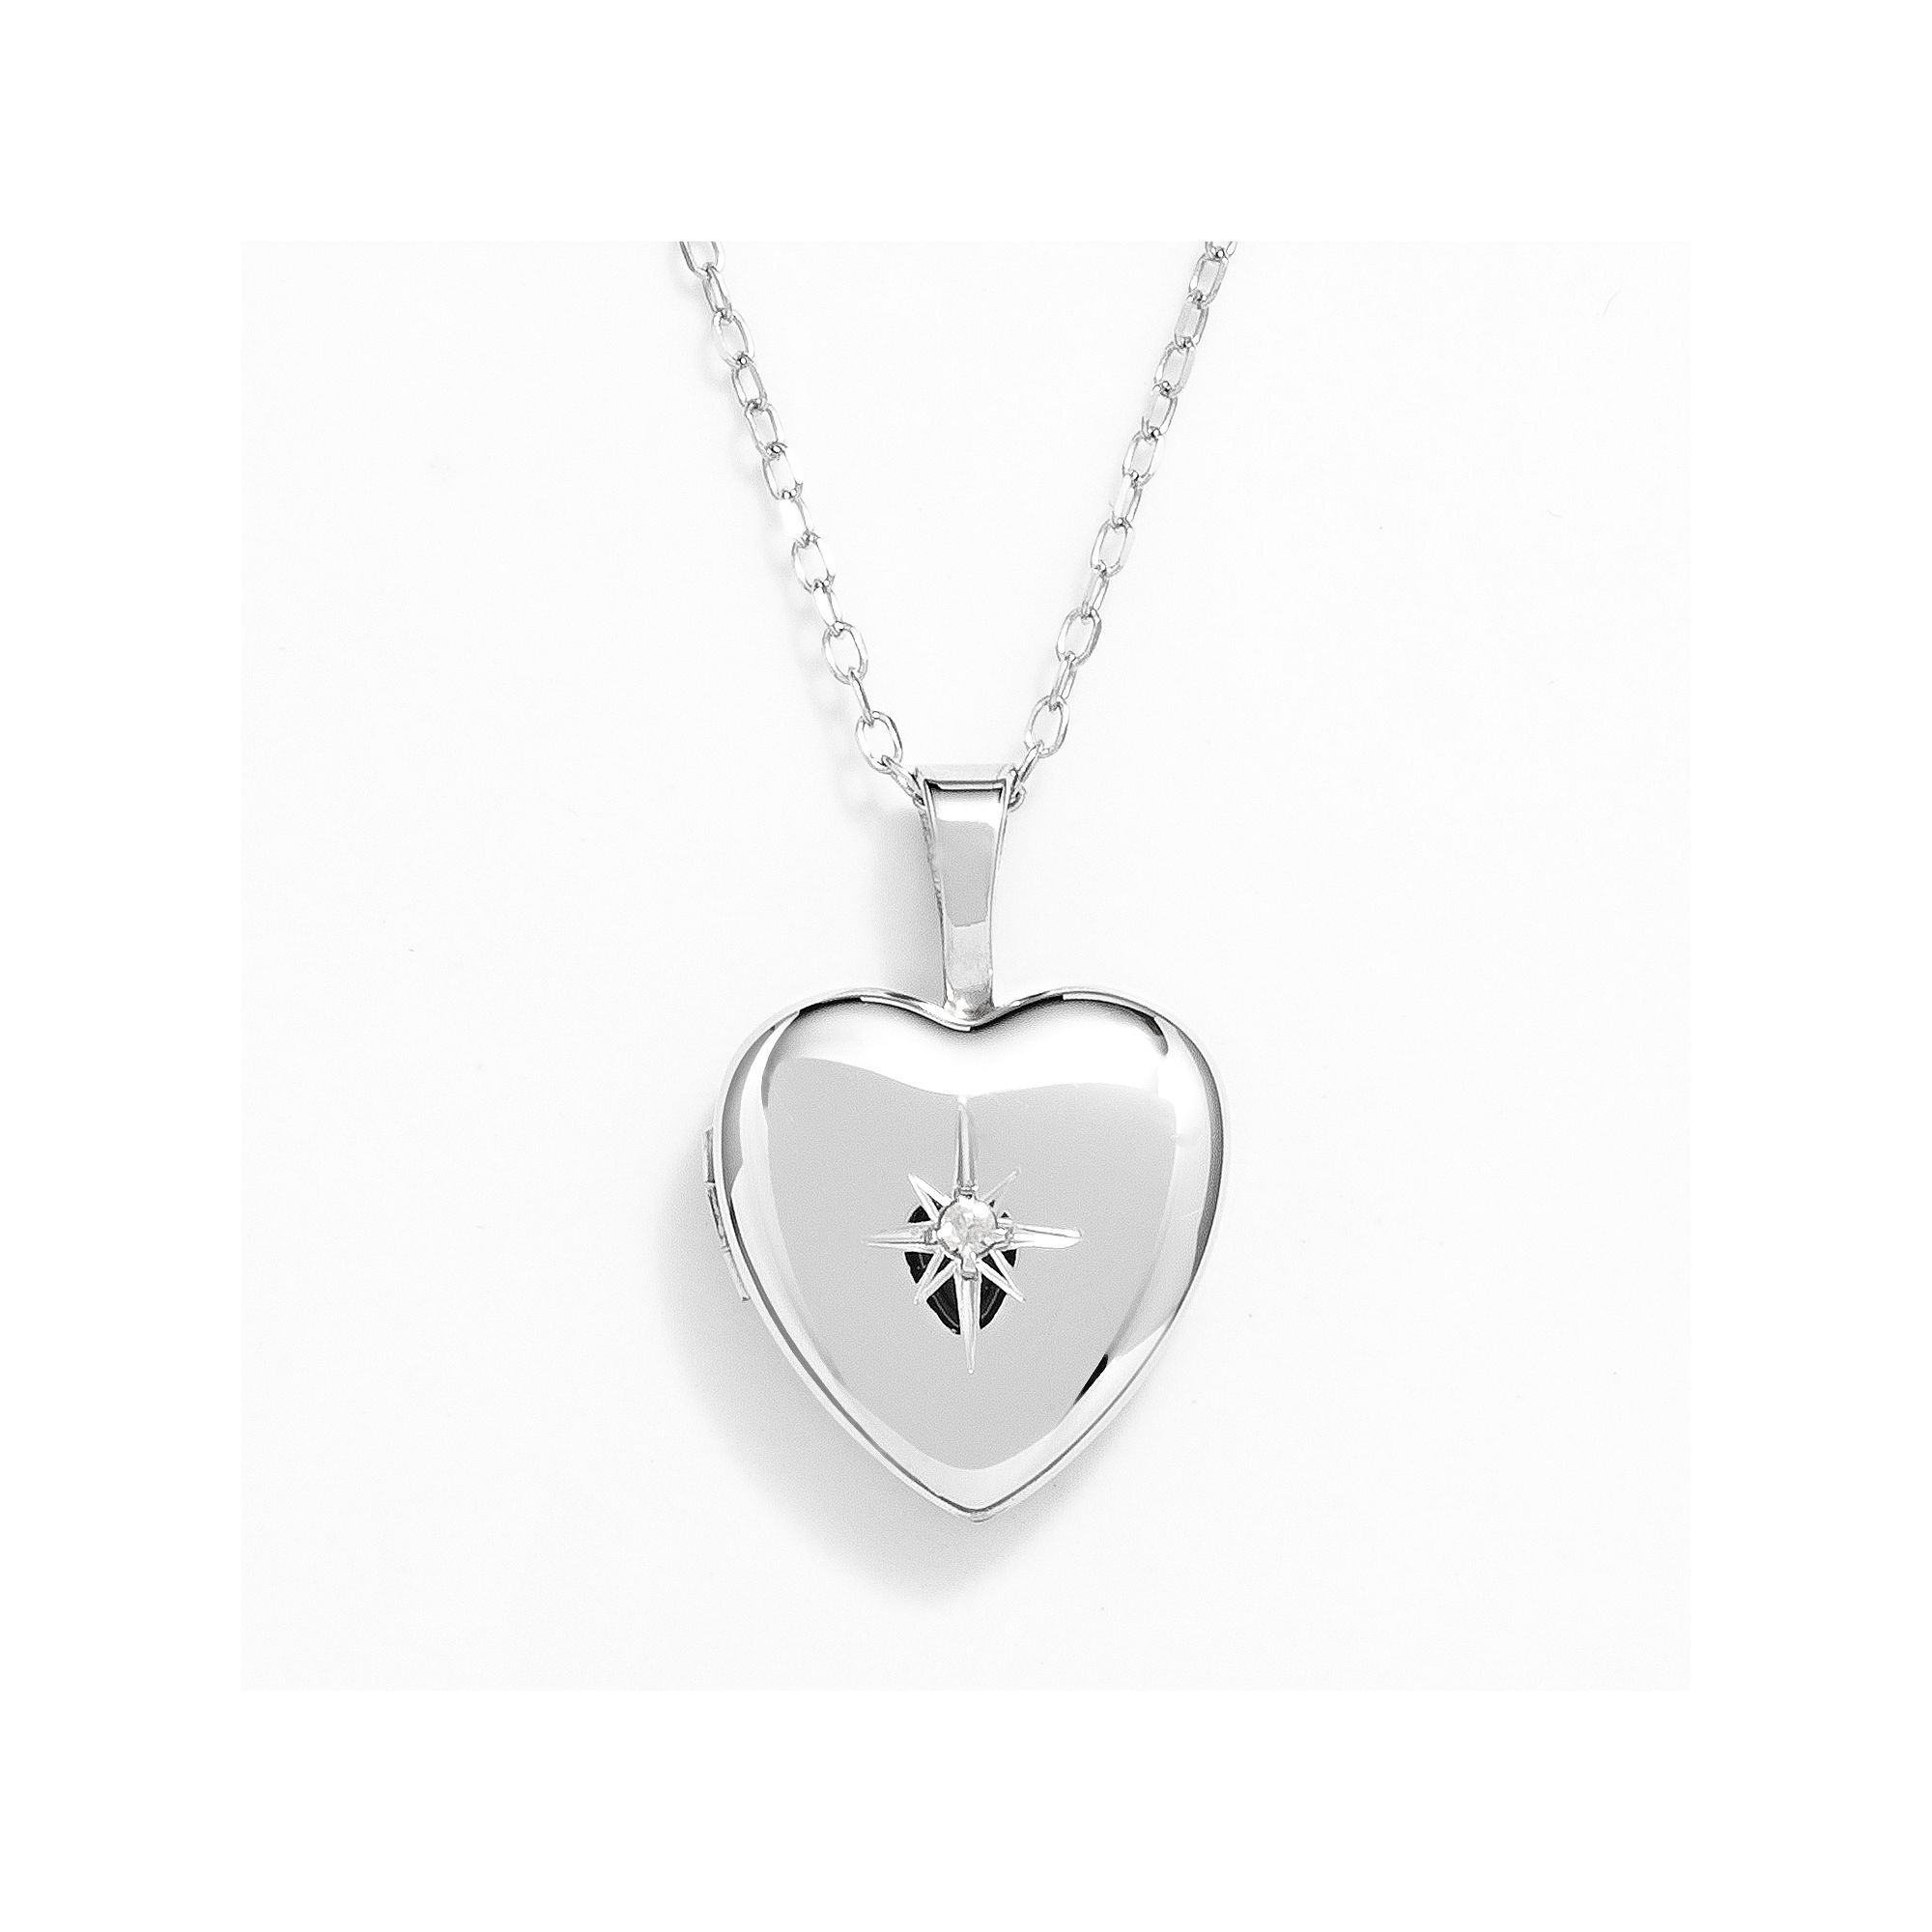 cz sterling personal at for style free pendant locket girls necklace com getdrawings lockets drawing vintage heart use silver